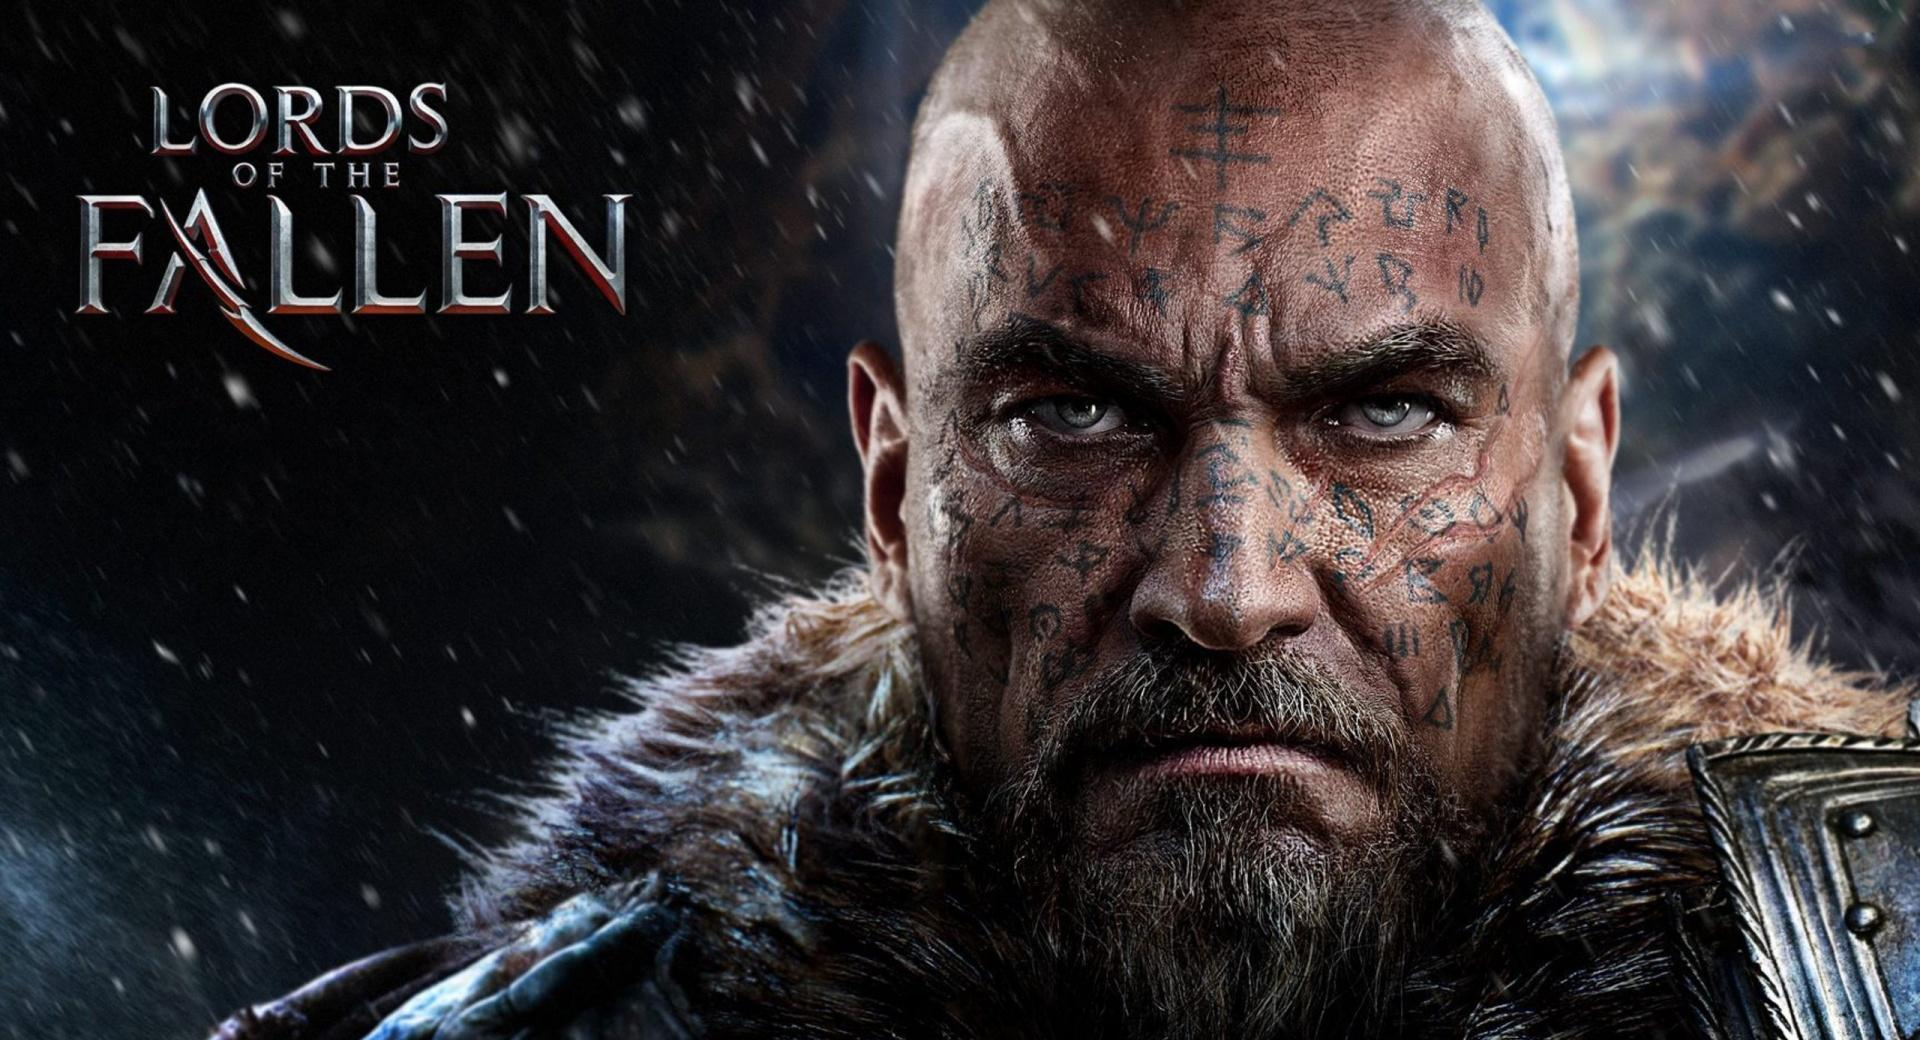 Lords of the Fallen Harkyn wallpapers HD quality